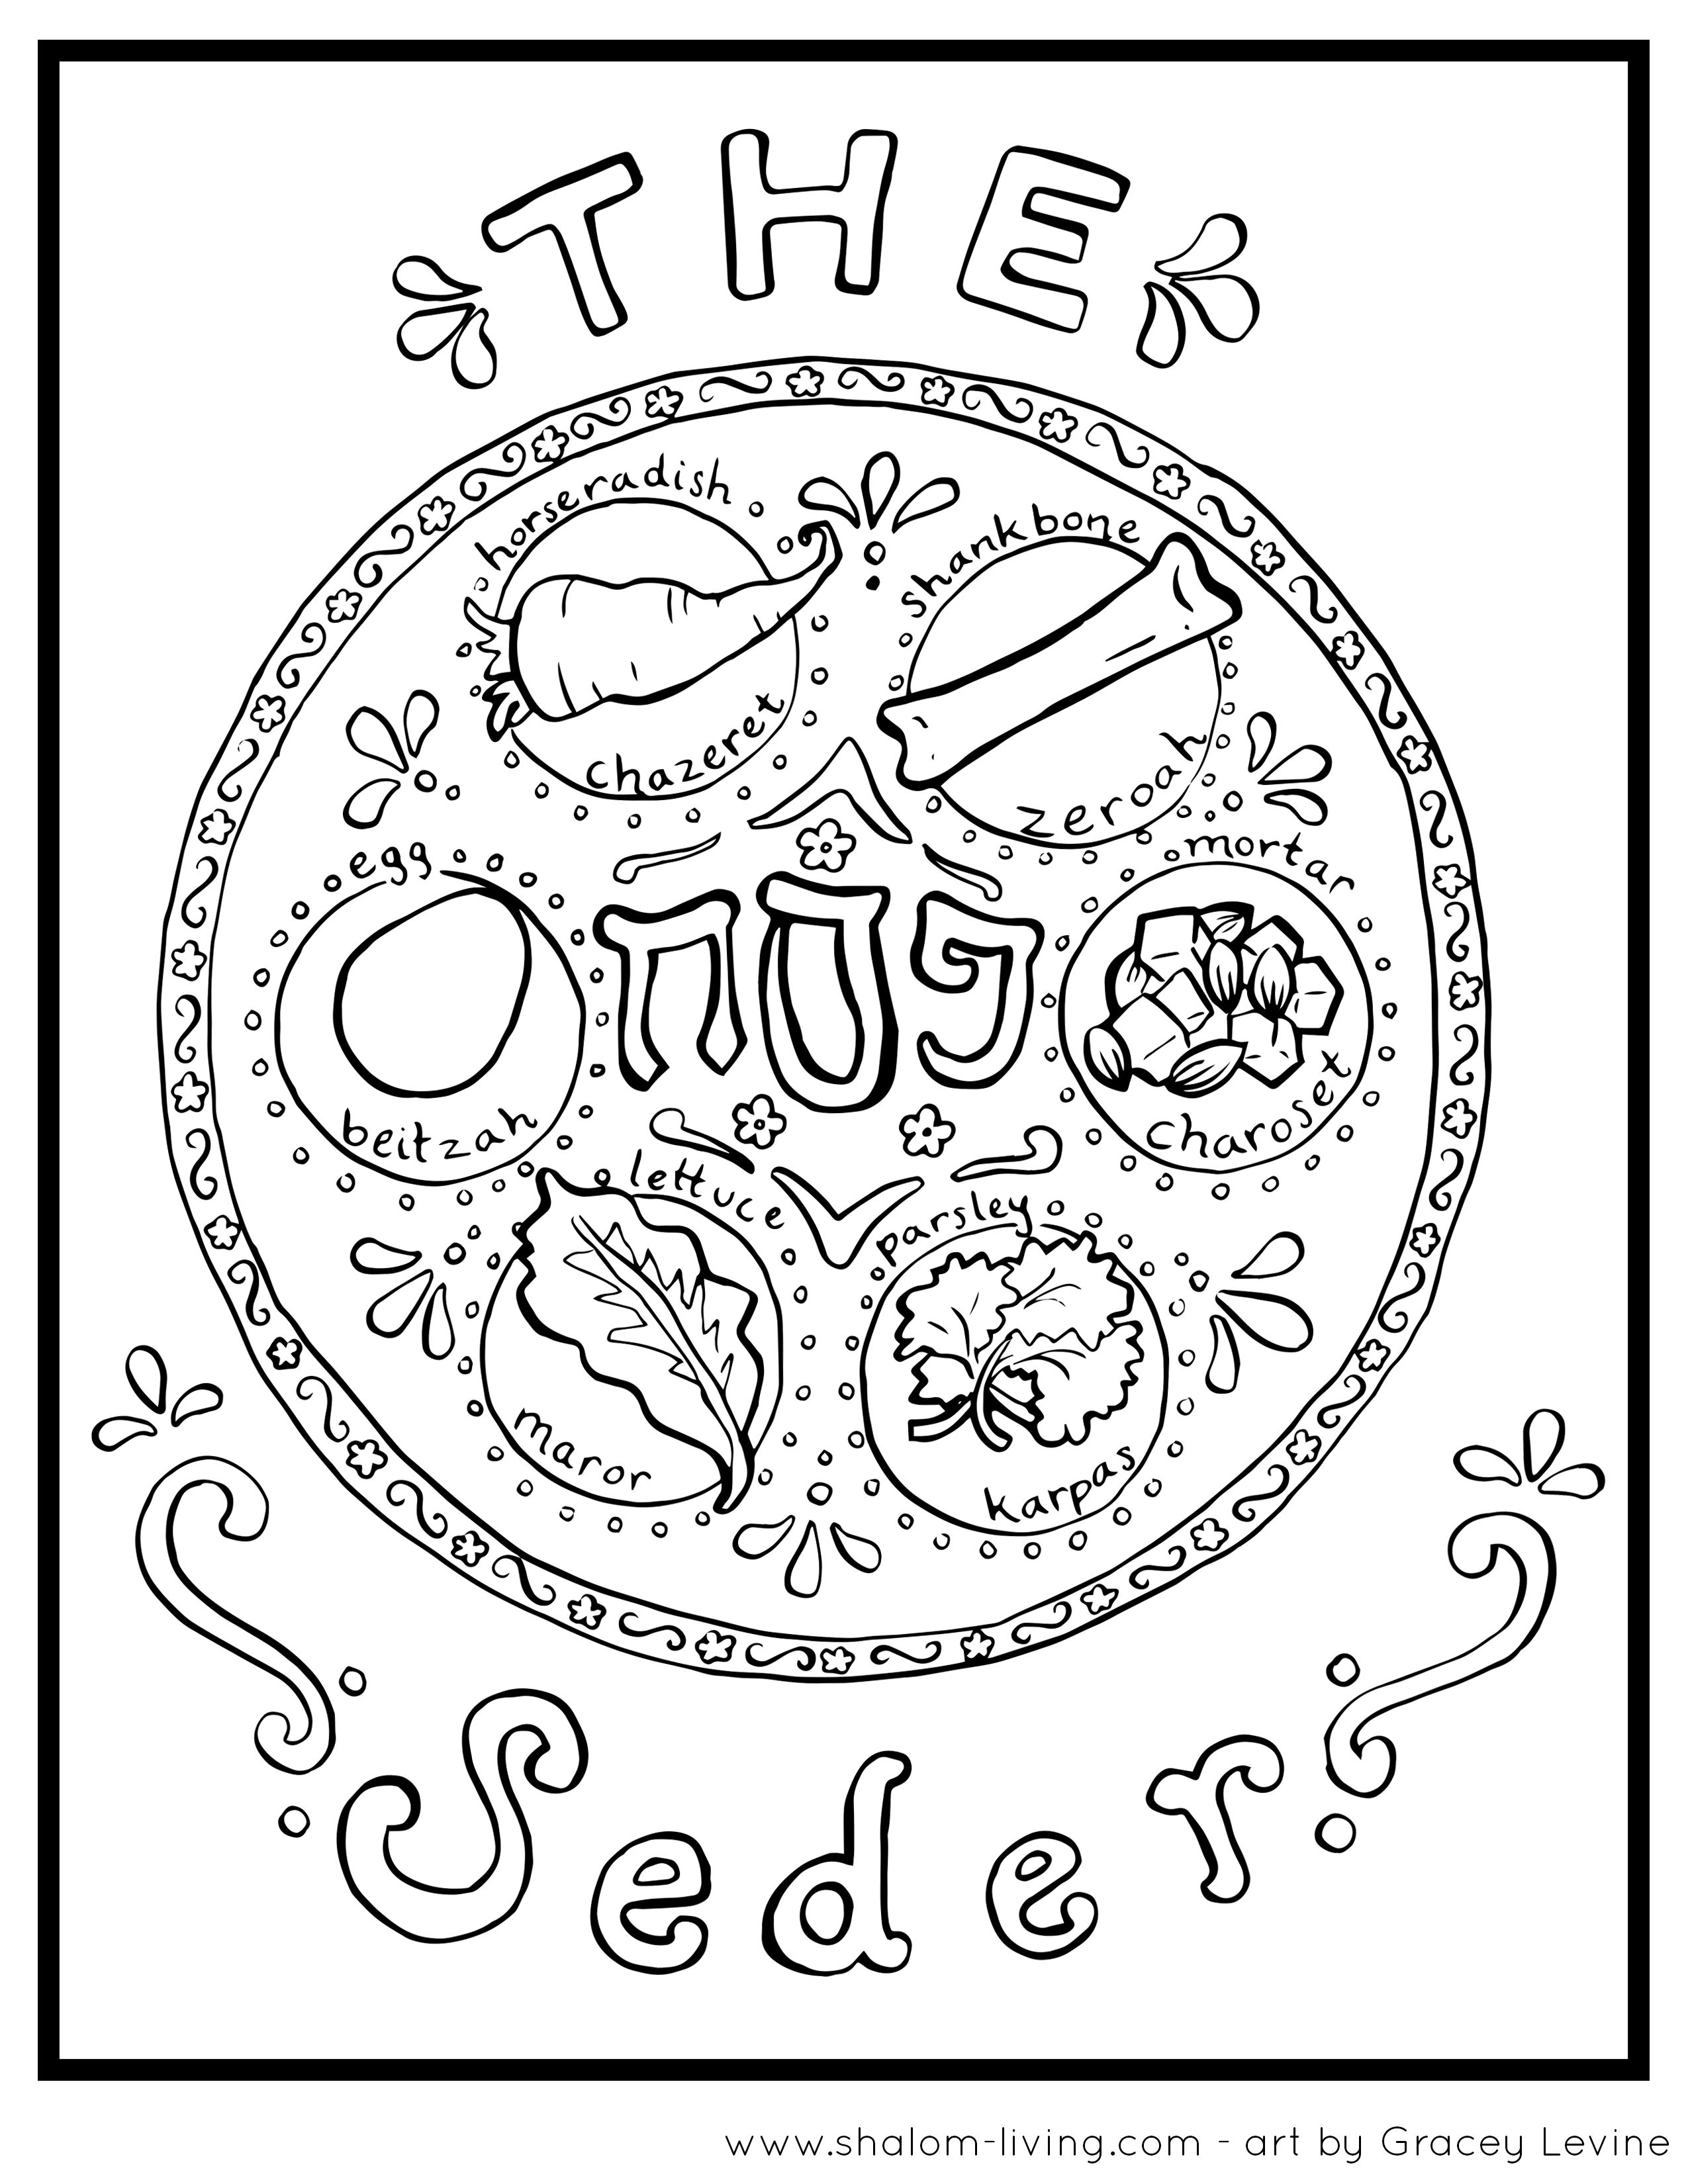 Passover Seder Plate Coloring Page Passover Coloring Page